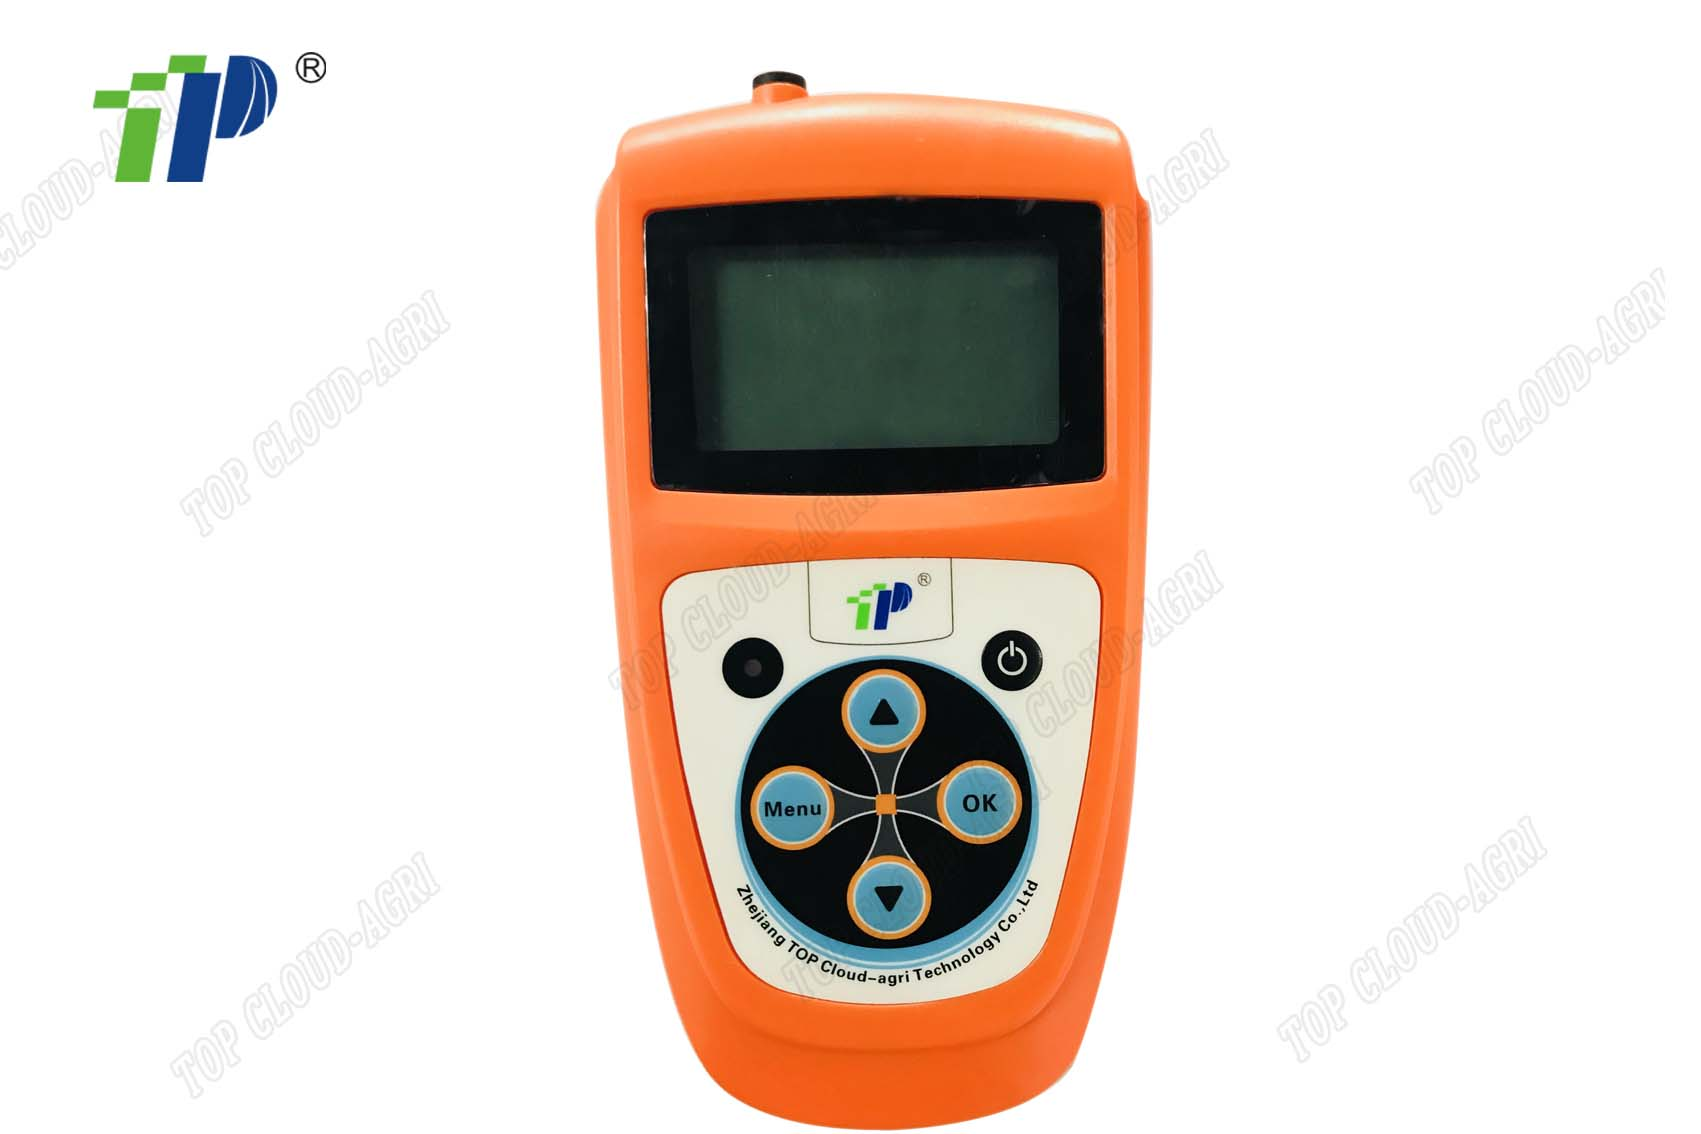 Handheld Agricultural Weather Monitor